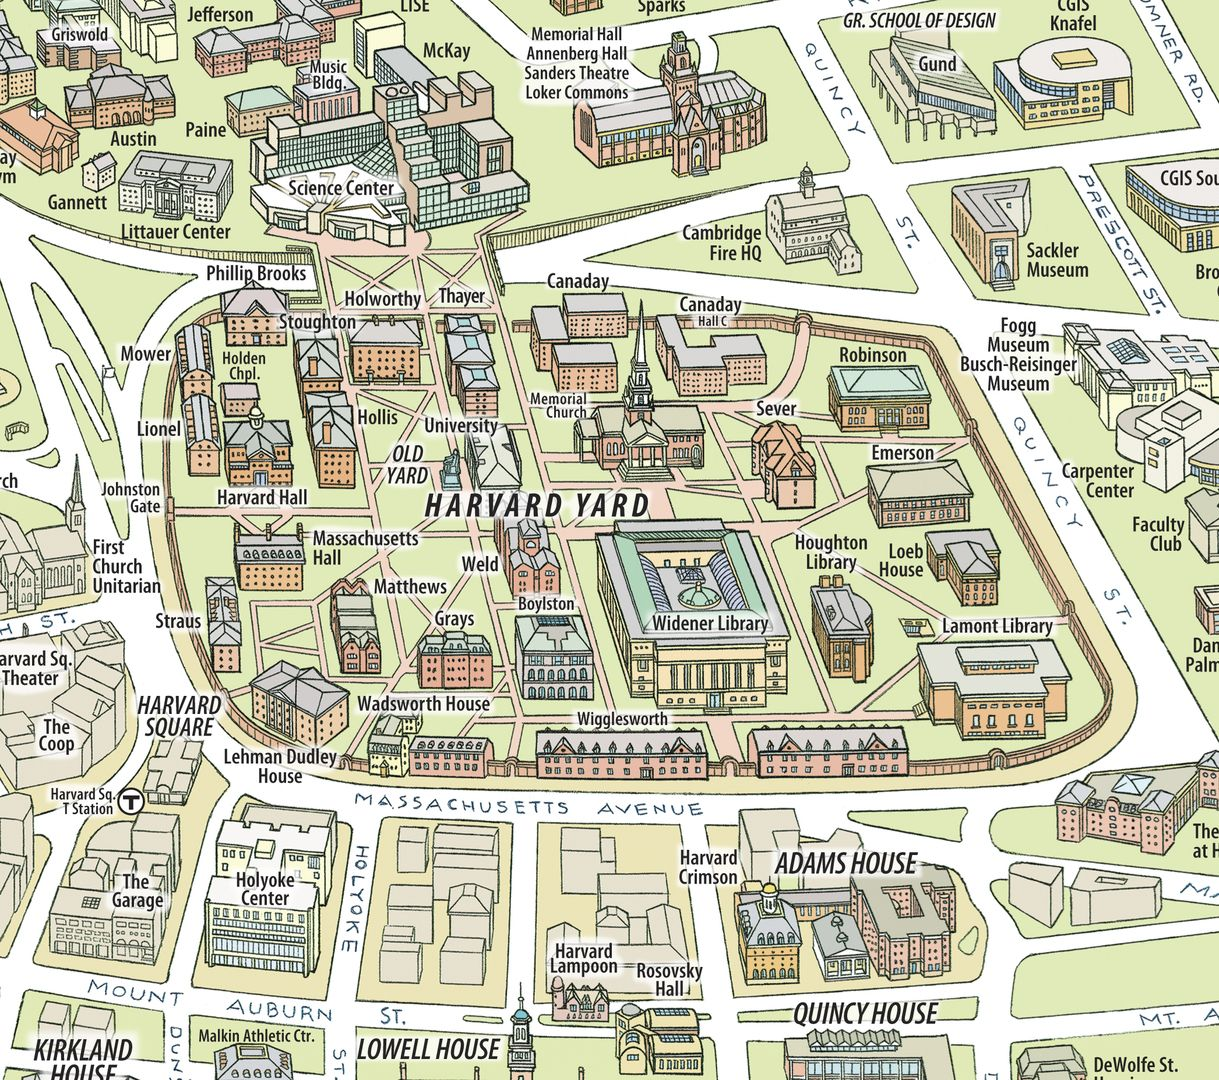 College Campus Map Campus Maps Campus Map College Campus Map